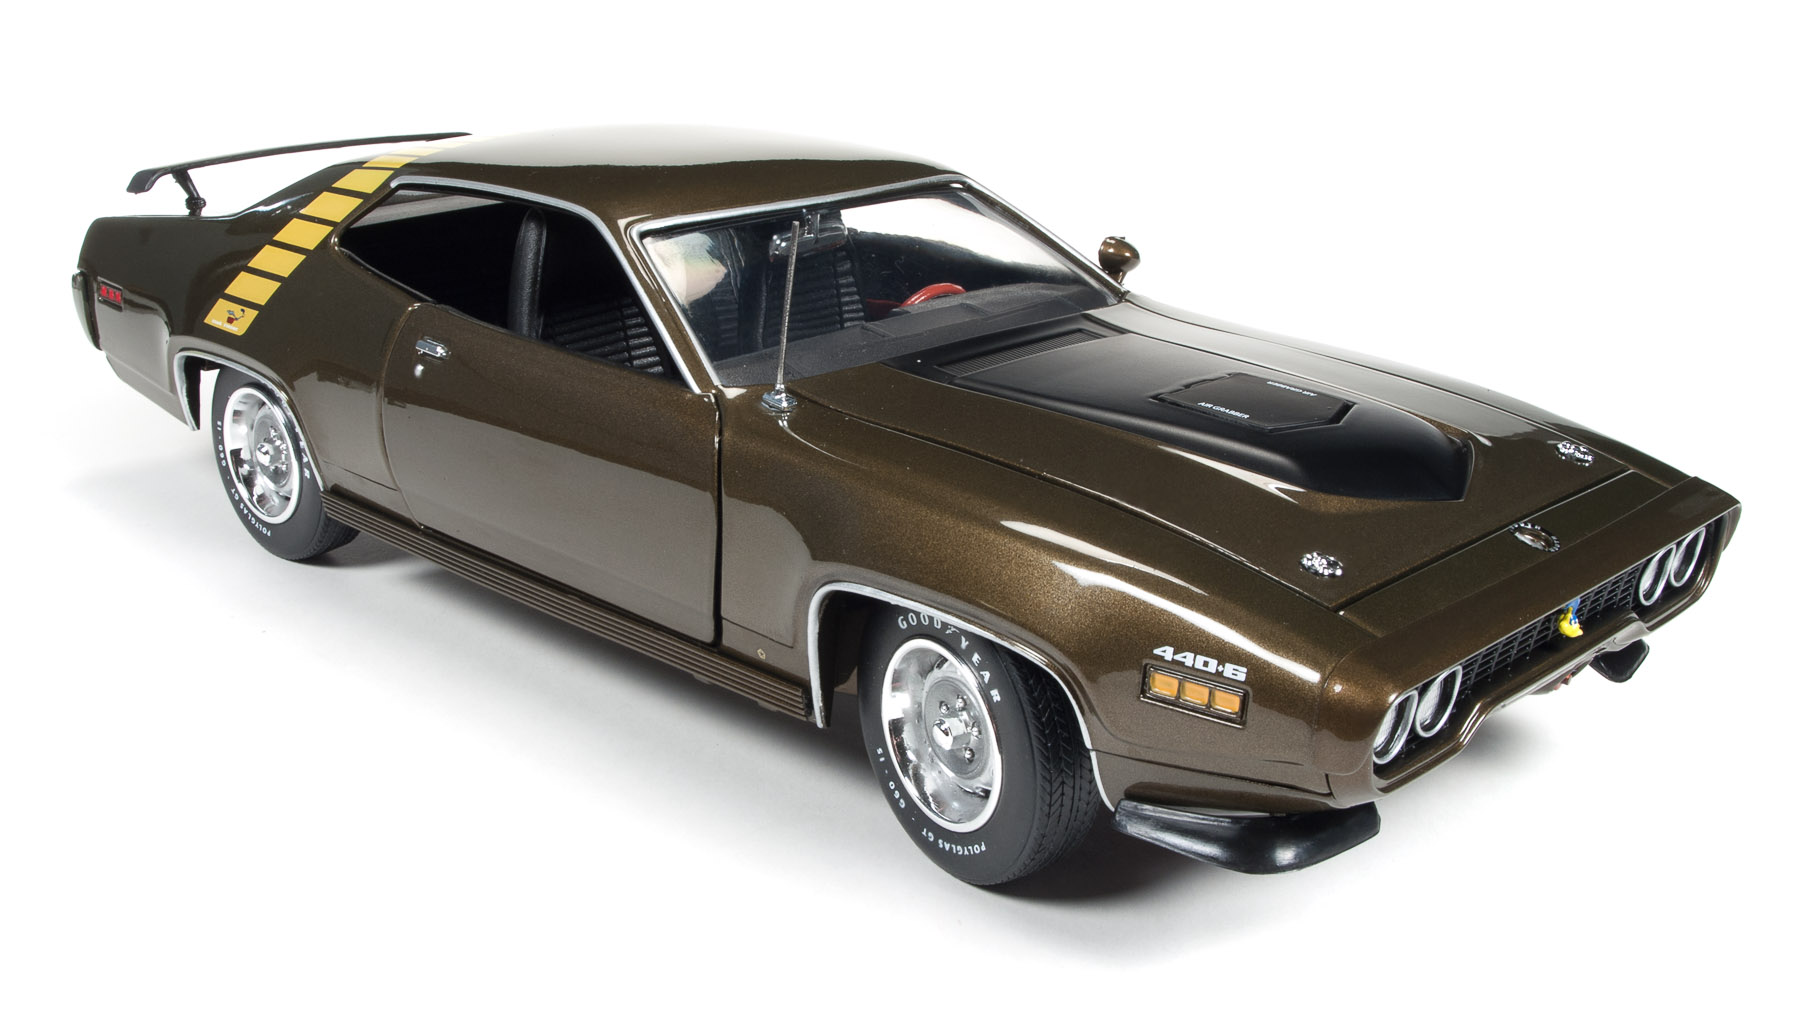 Foose Terracuda furthermore Merchant also 1971 Plymouth Roadrunner Hardtop besides JADA 20TOYS92351 BK also Chevrolet Camaro RS red car. on johnny lightning muscle cars